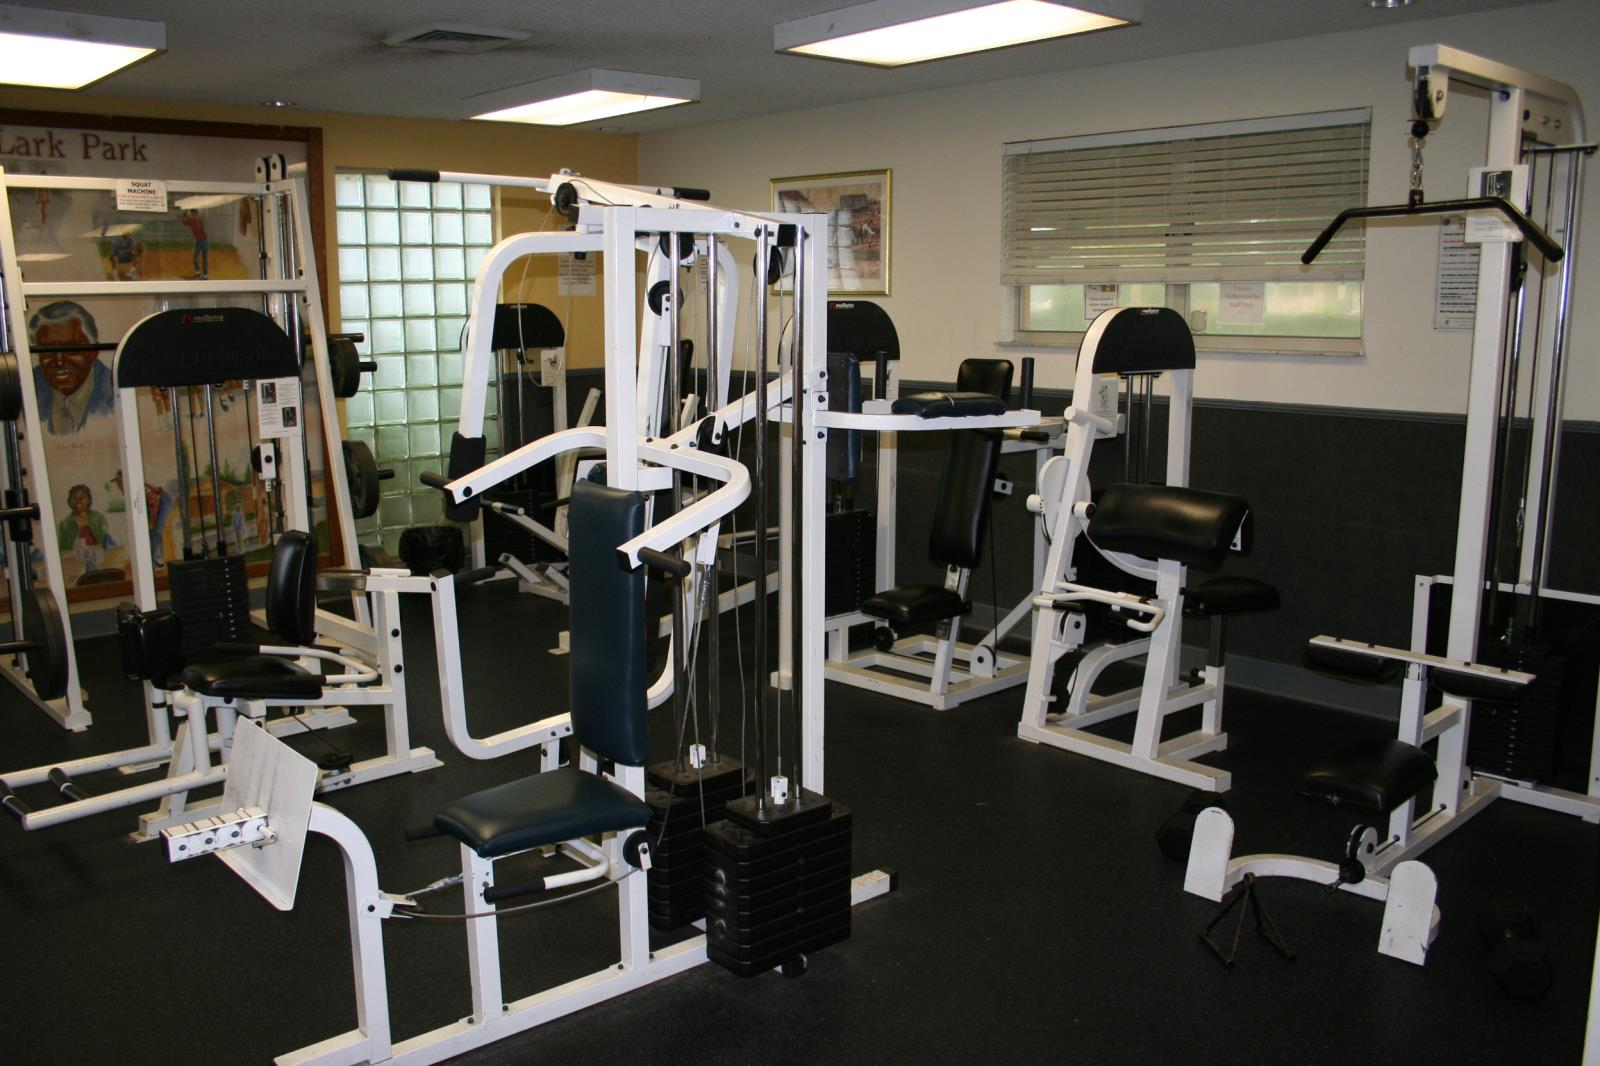 West Ken Lark Fitness Equipment